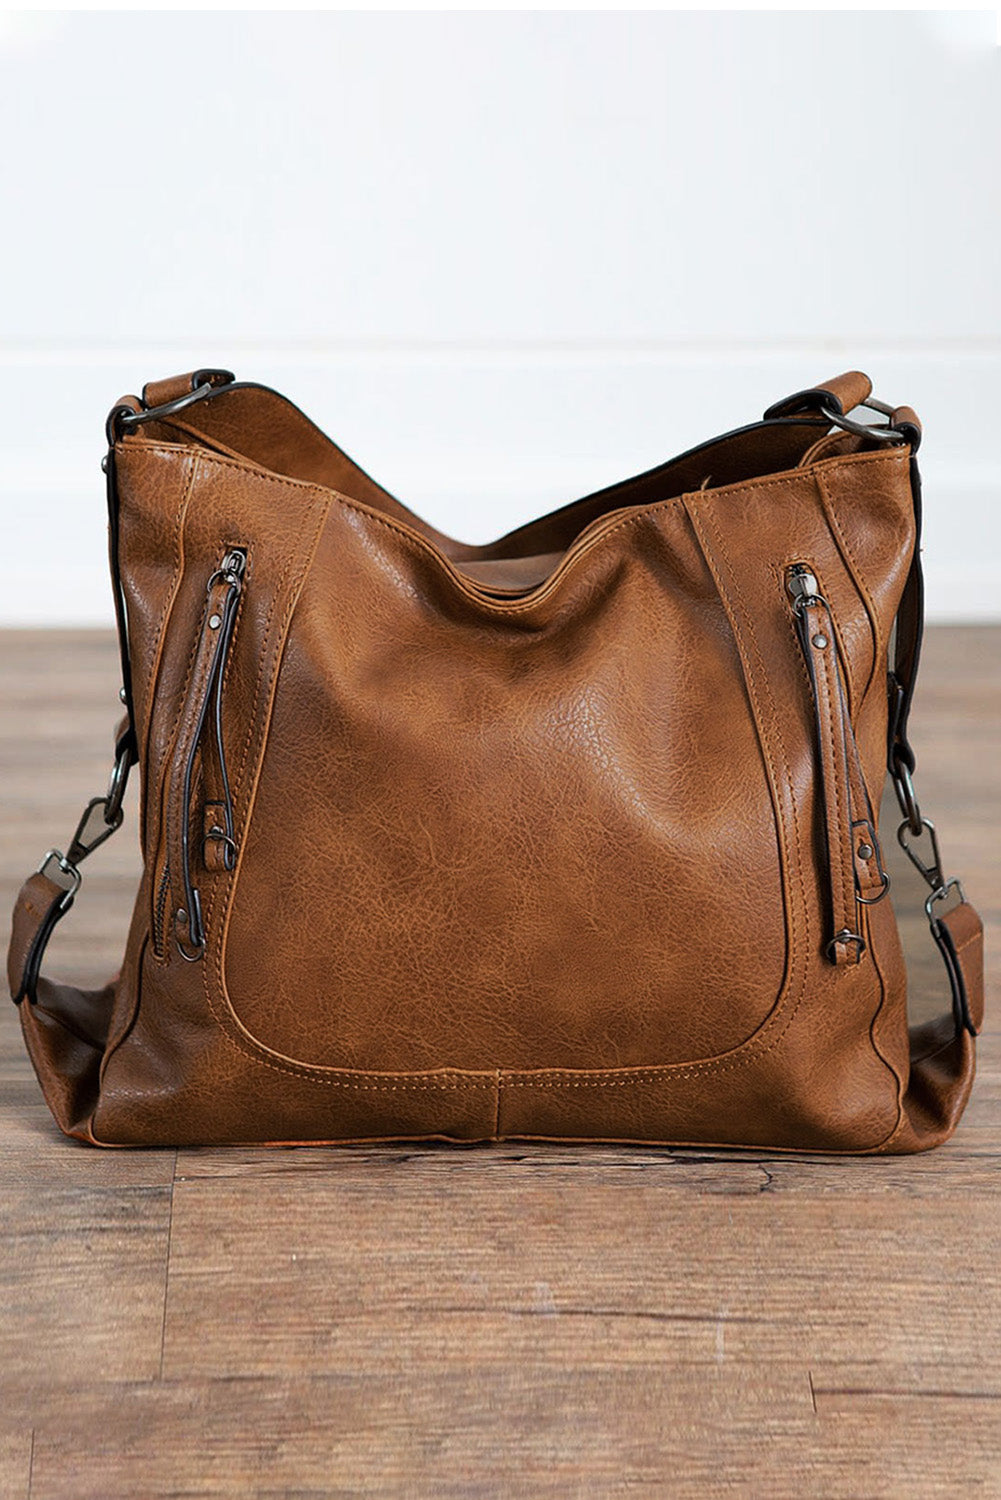 Brown Faux Leather Handbag